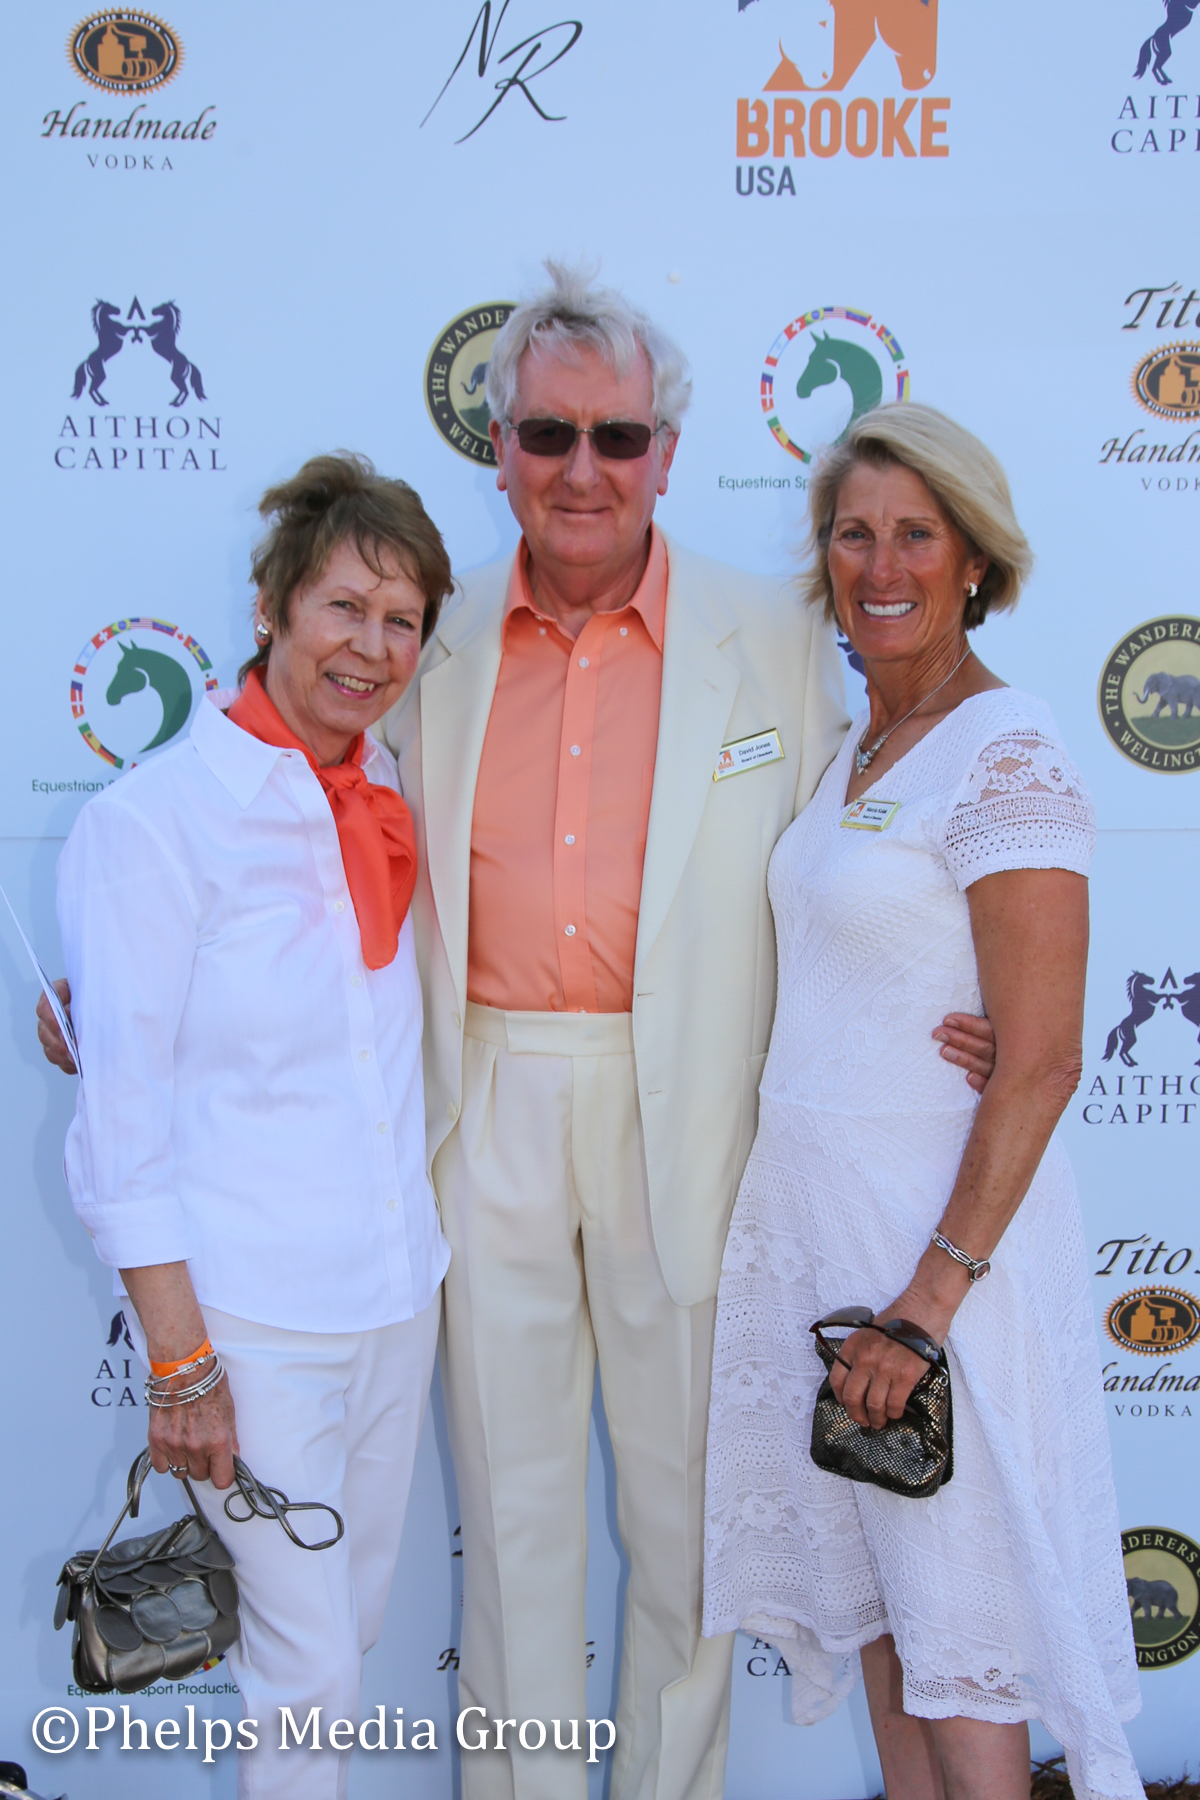 Brooke Board Marcia Kulak and Janet and Daid Jones; Nic Roldan's 2nd Annual Sunset Polo & White Party, FL, by Phelps Media.jpg